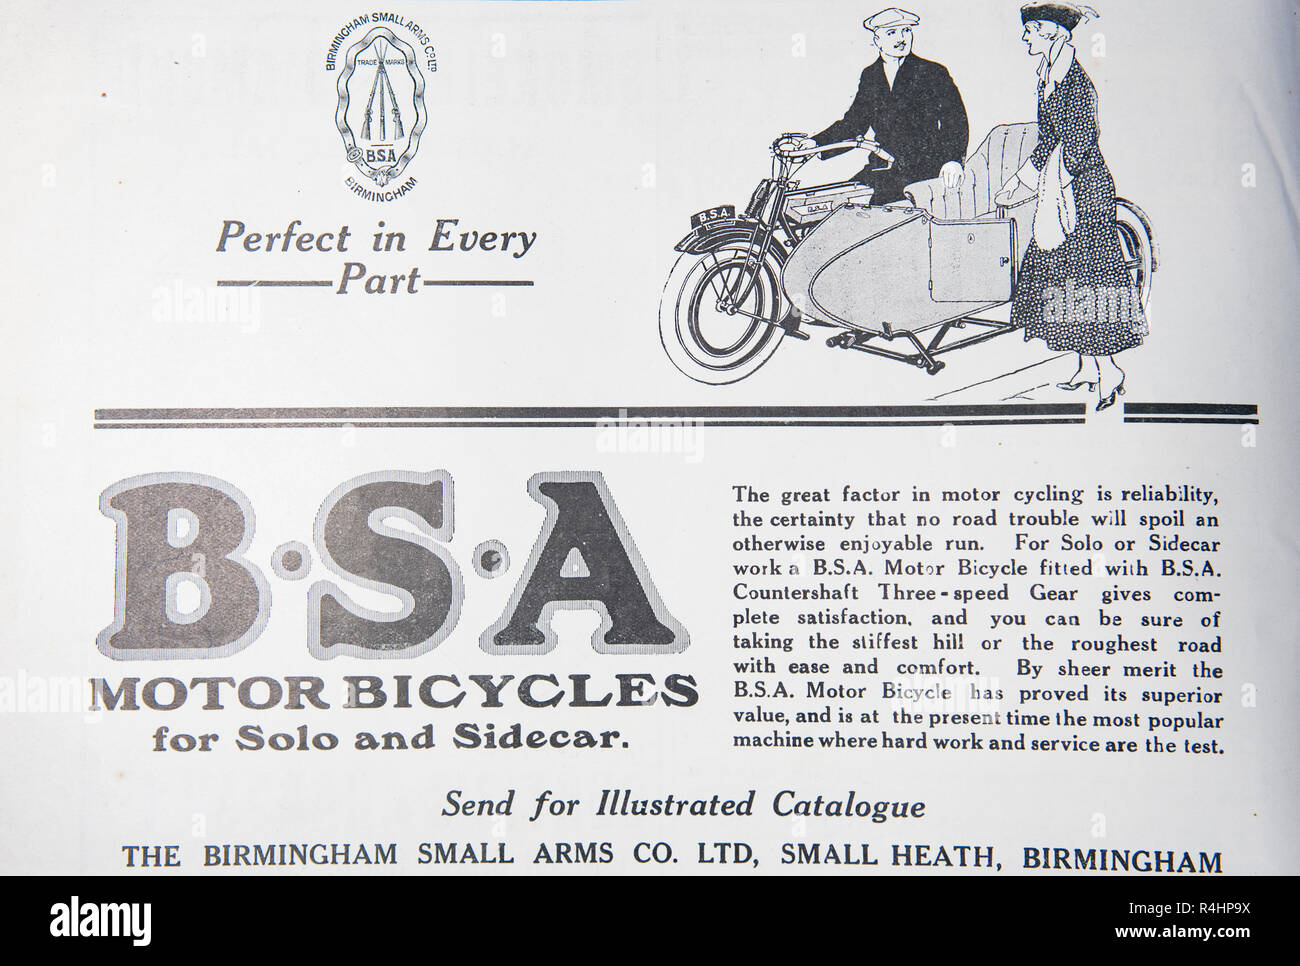 An old advert for B.S.A motorbicycles. From an old British magazine from the 1914-1919 period. - Stock Image